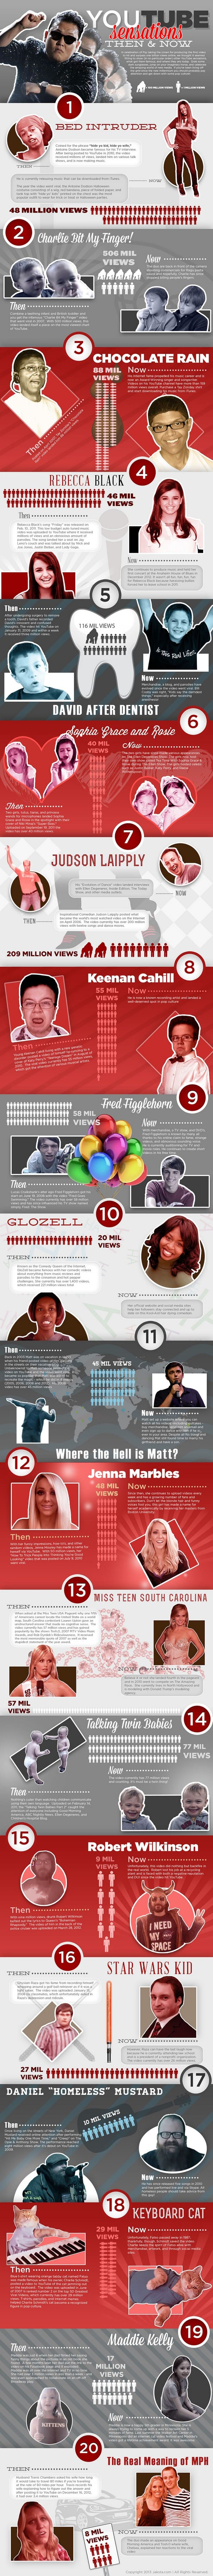 YouTube Sensations Where are they now Infographic